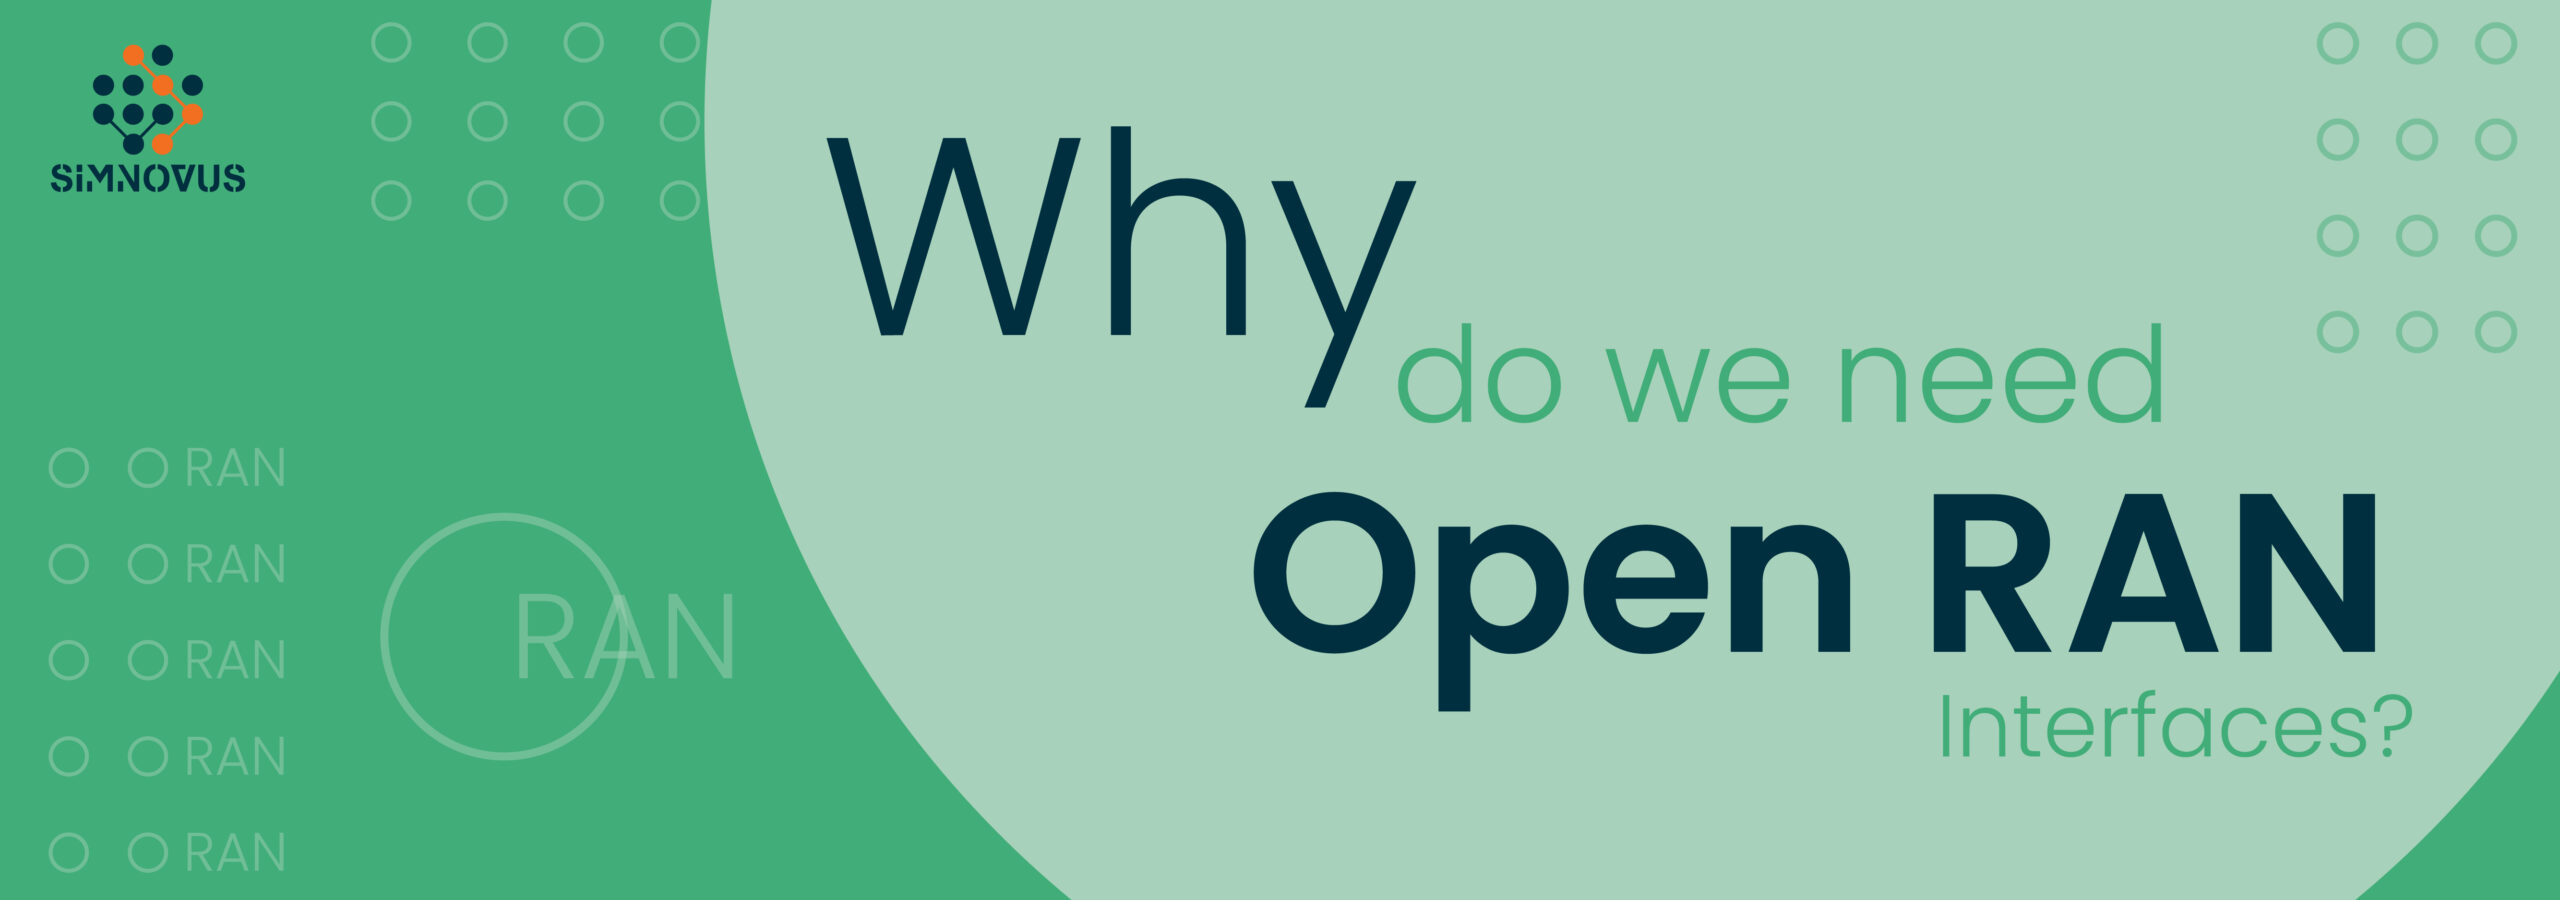 why-do-we-need-o-ran-when-we-already-have-3gpp-interfaces-that-are-open-and-standardized?